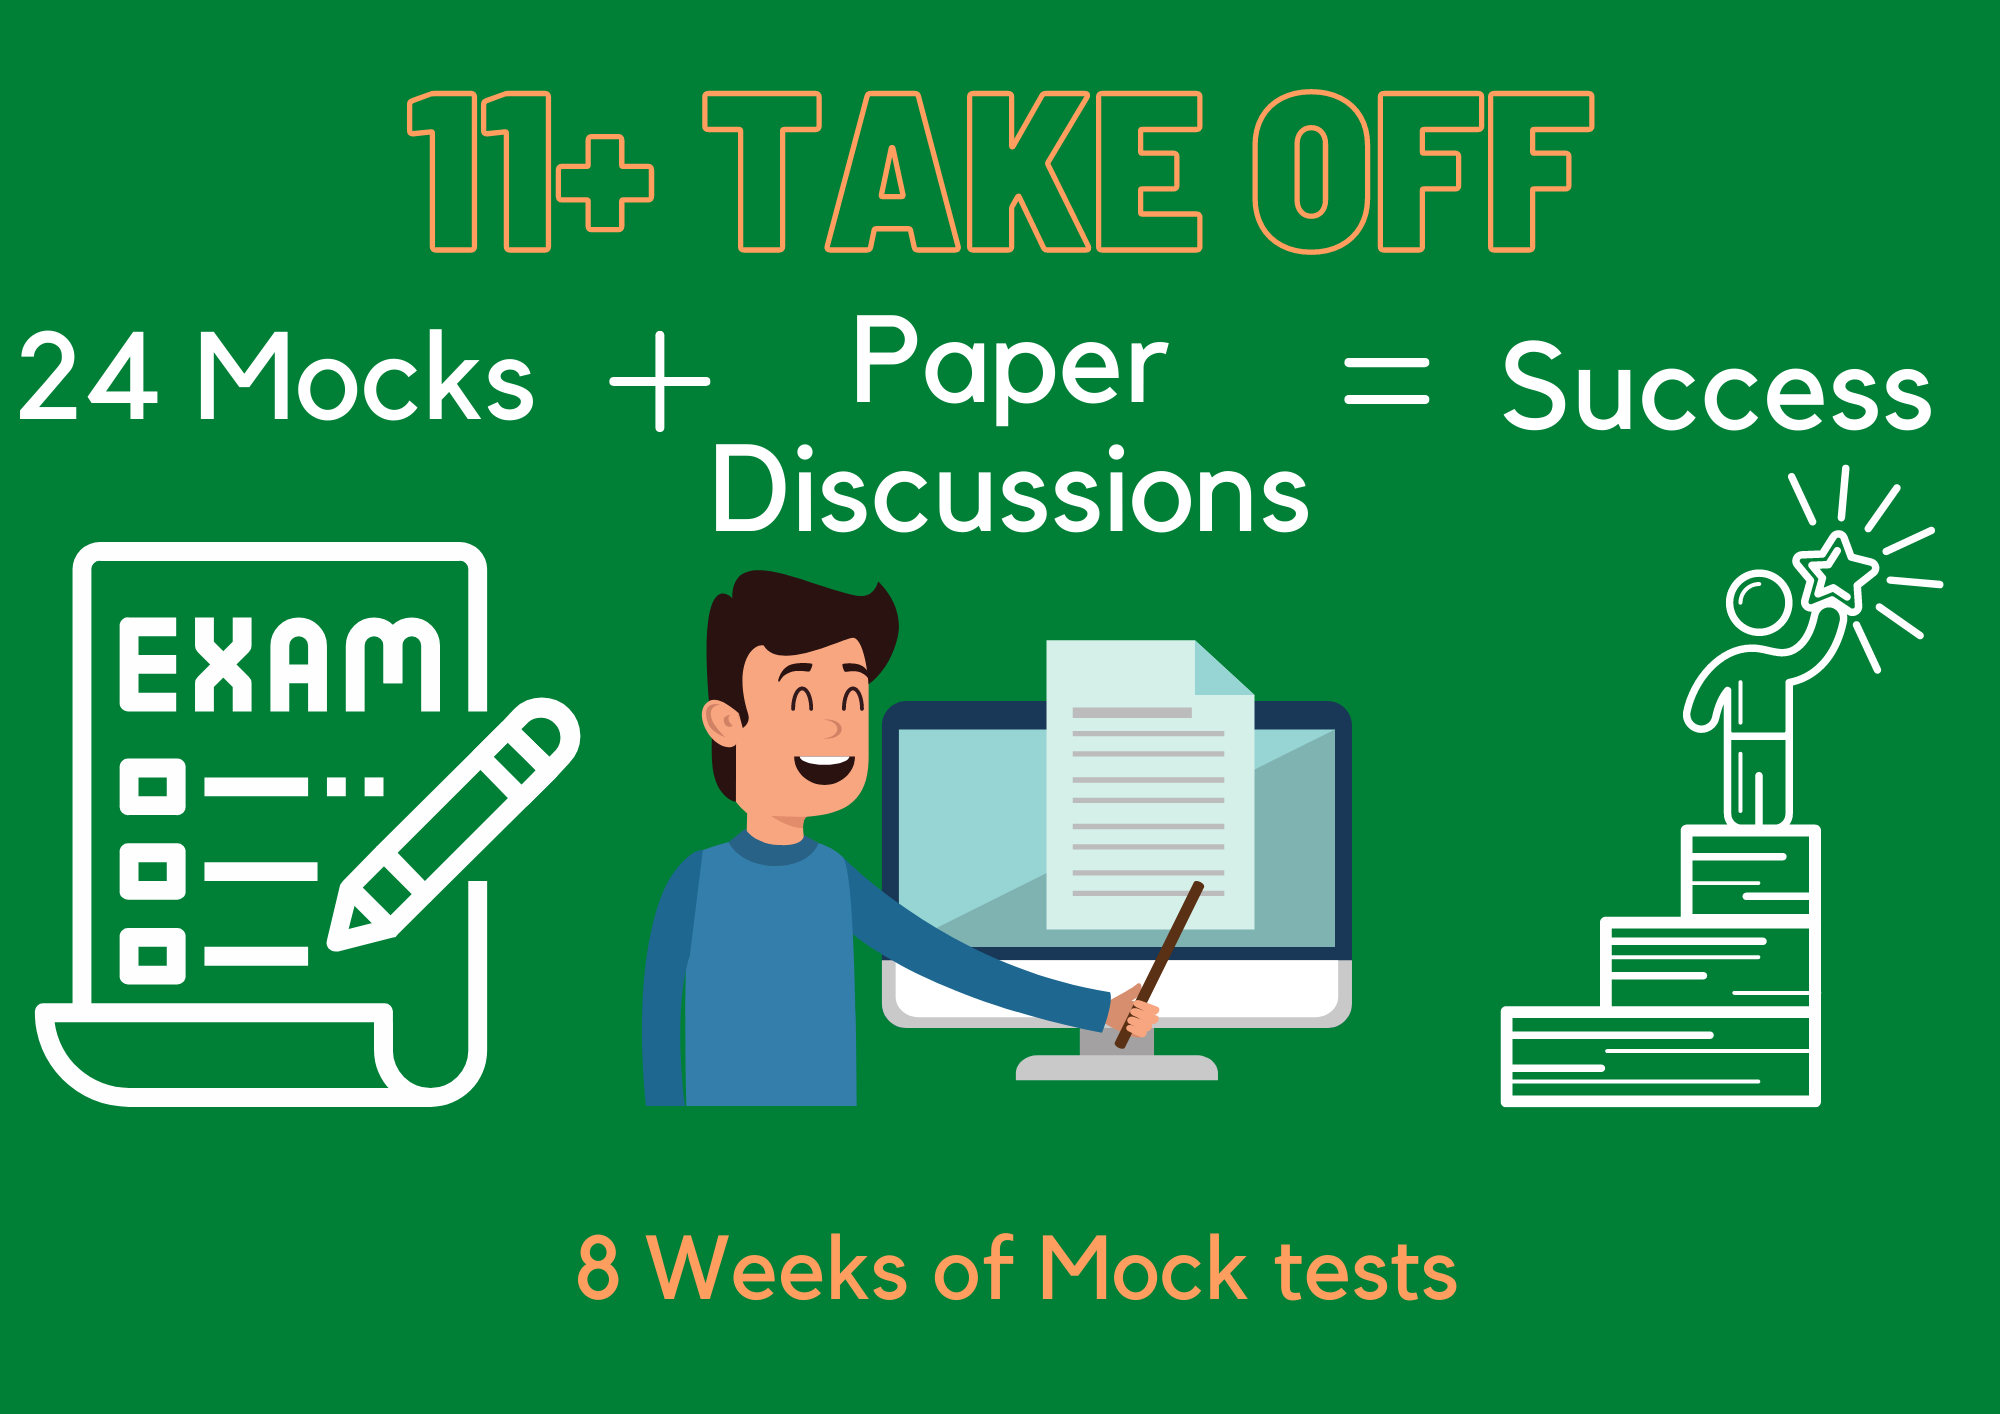 Take Off: 11PLUS Mock Tests + Paper Discussions